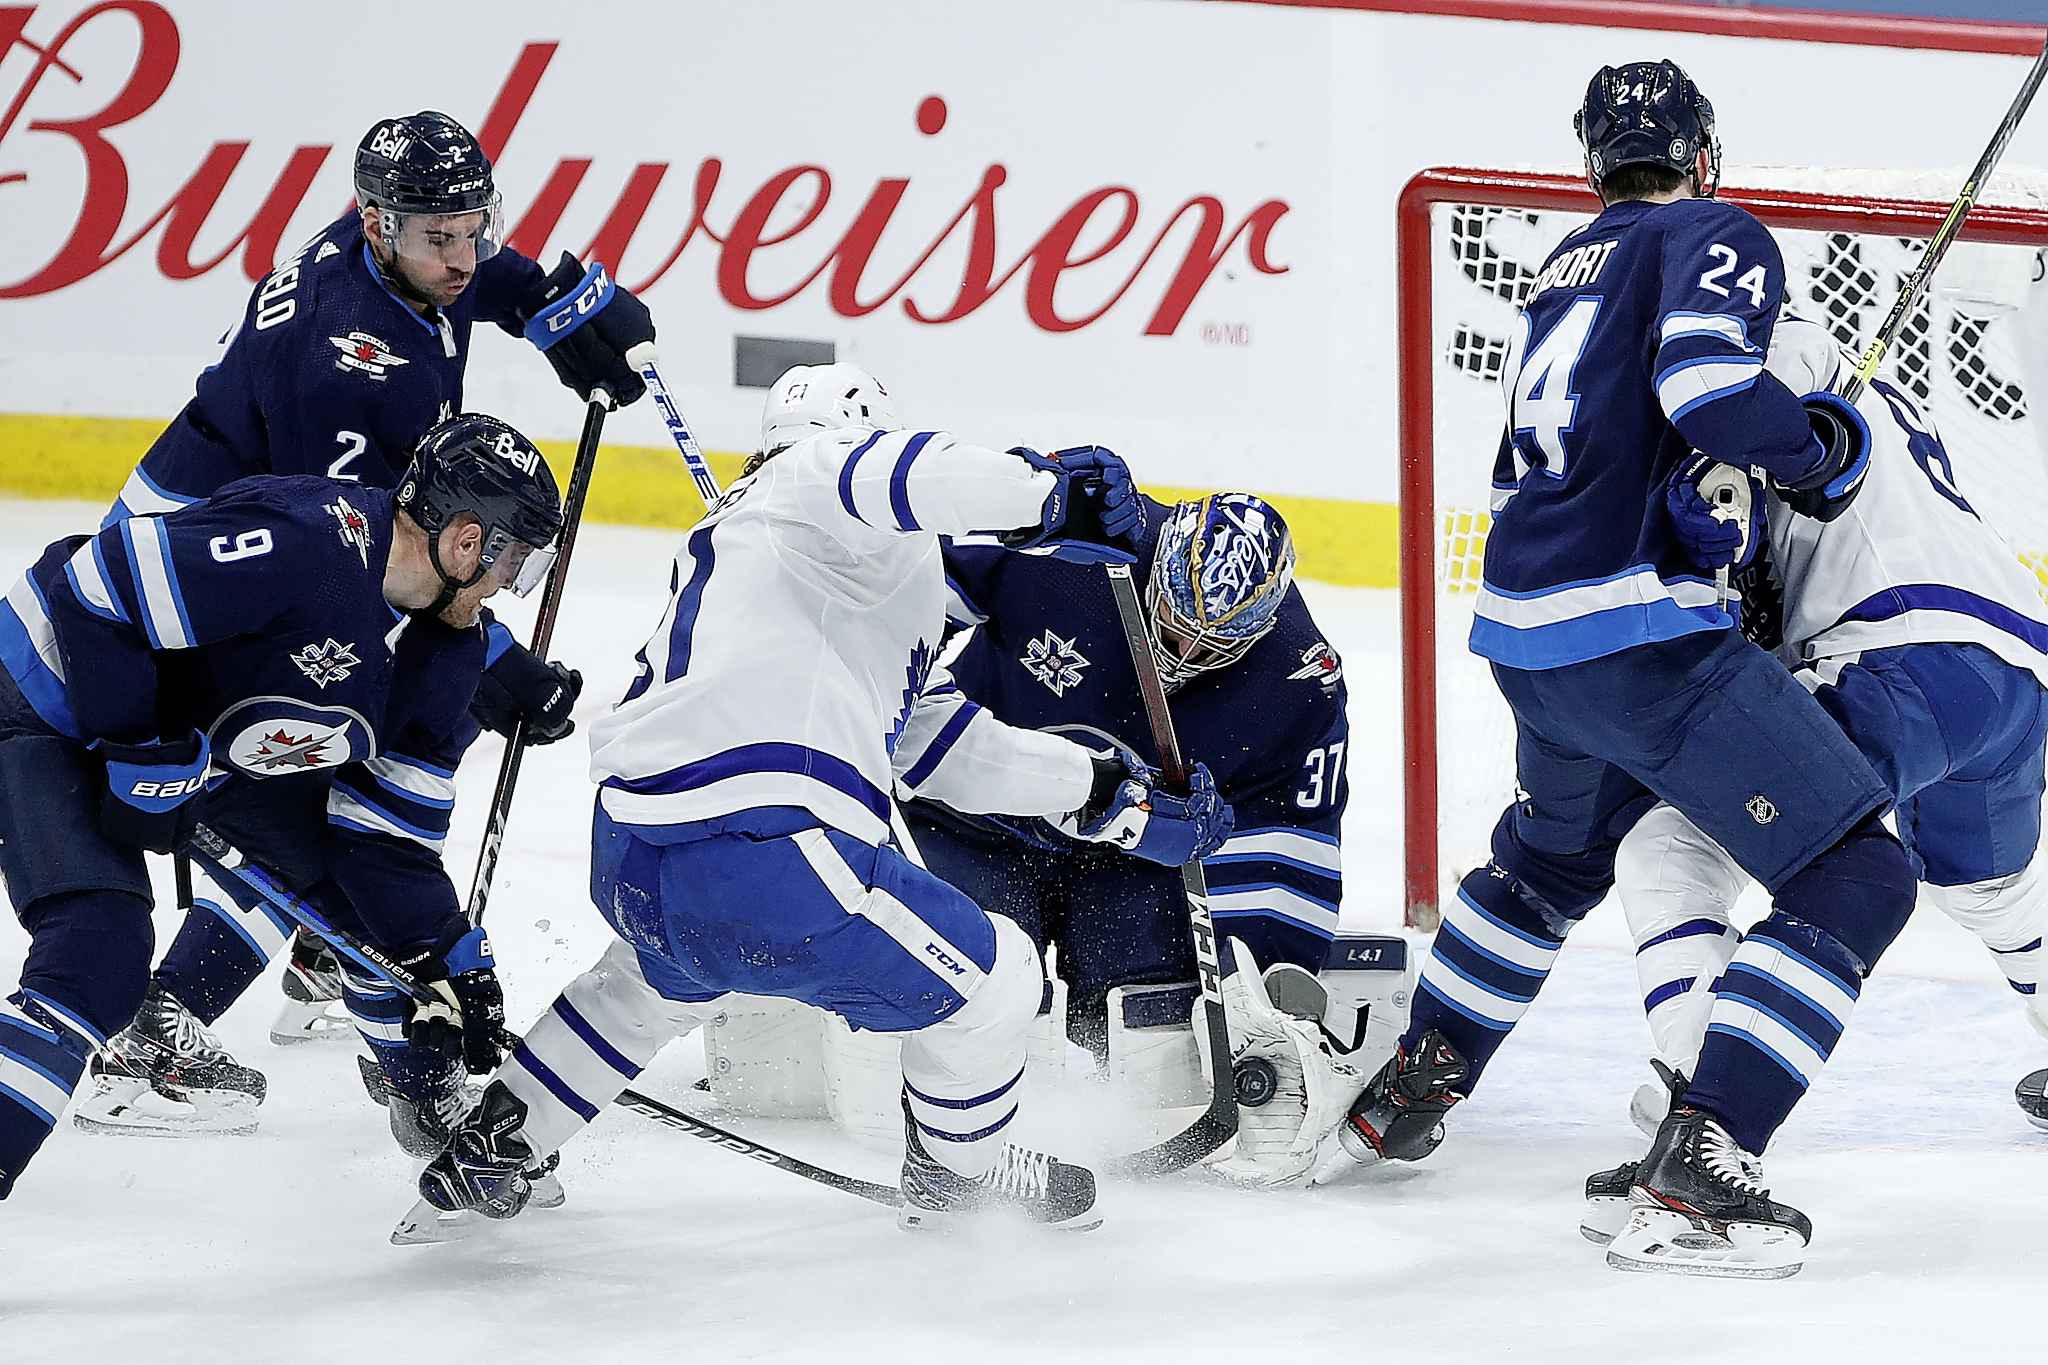 Winnipeg Jets goaltender Connor Hellebuyck (37) saves the shot from Toronto Maple Leafs' John Tavares (91) during the first period. (John Woods / The Canadian Press)